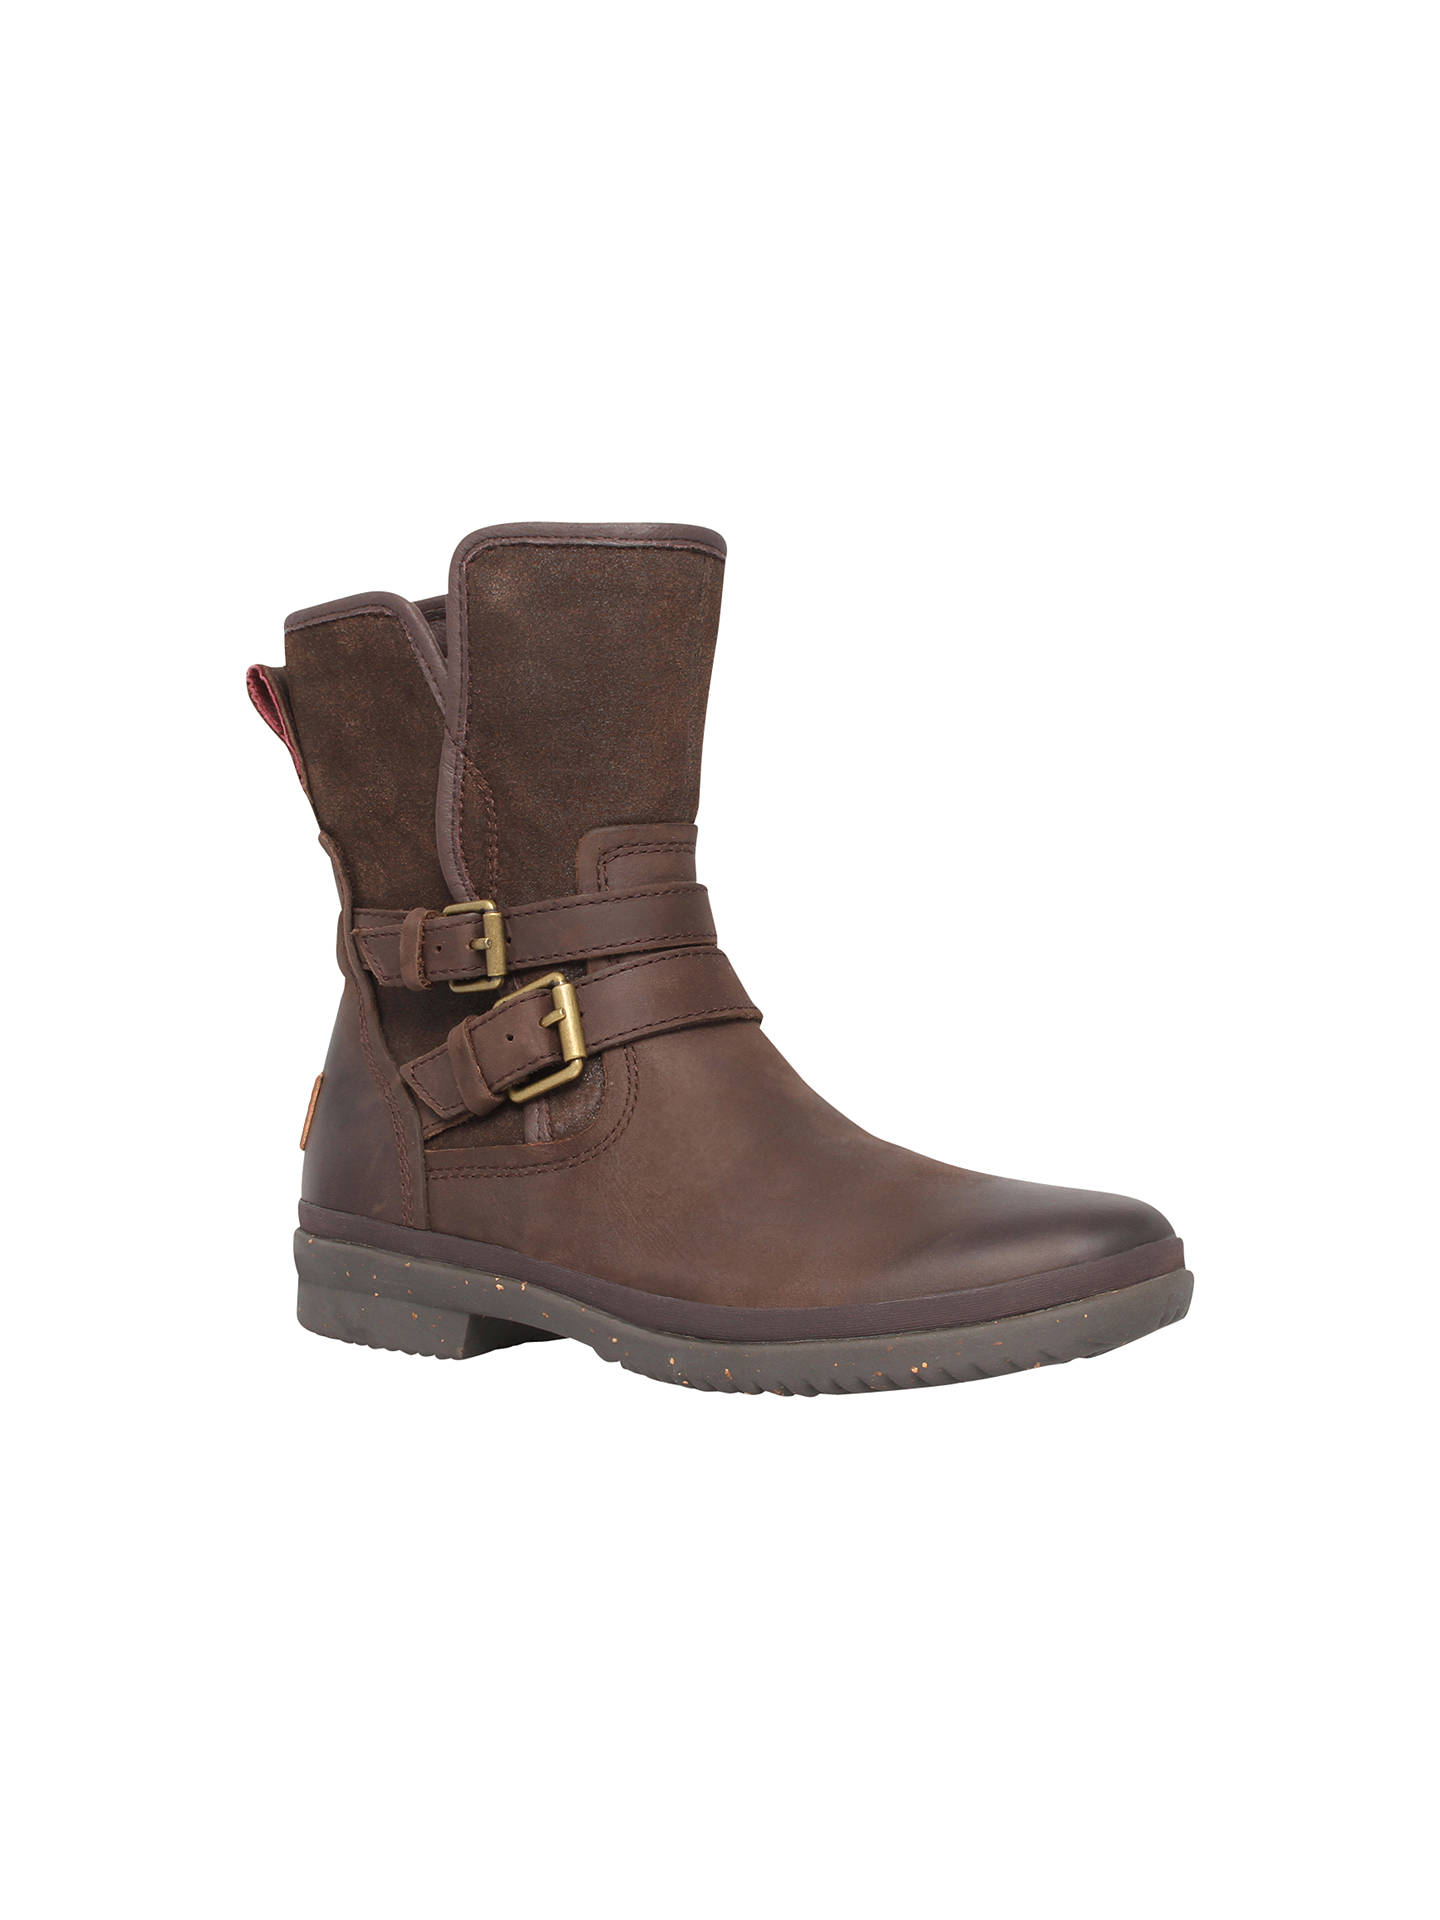 bab1ca0d3a8 UGG Simmens Waterproof Ankle Boots at John Lewis & Partners